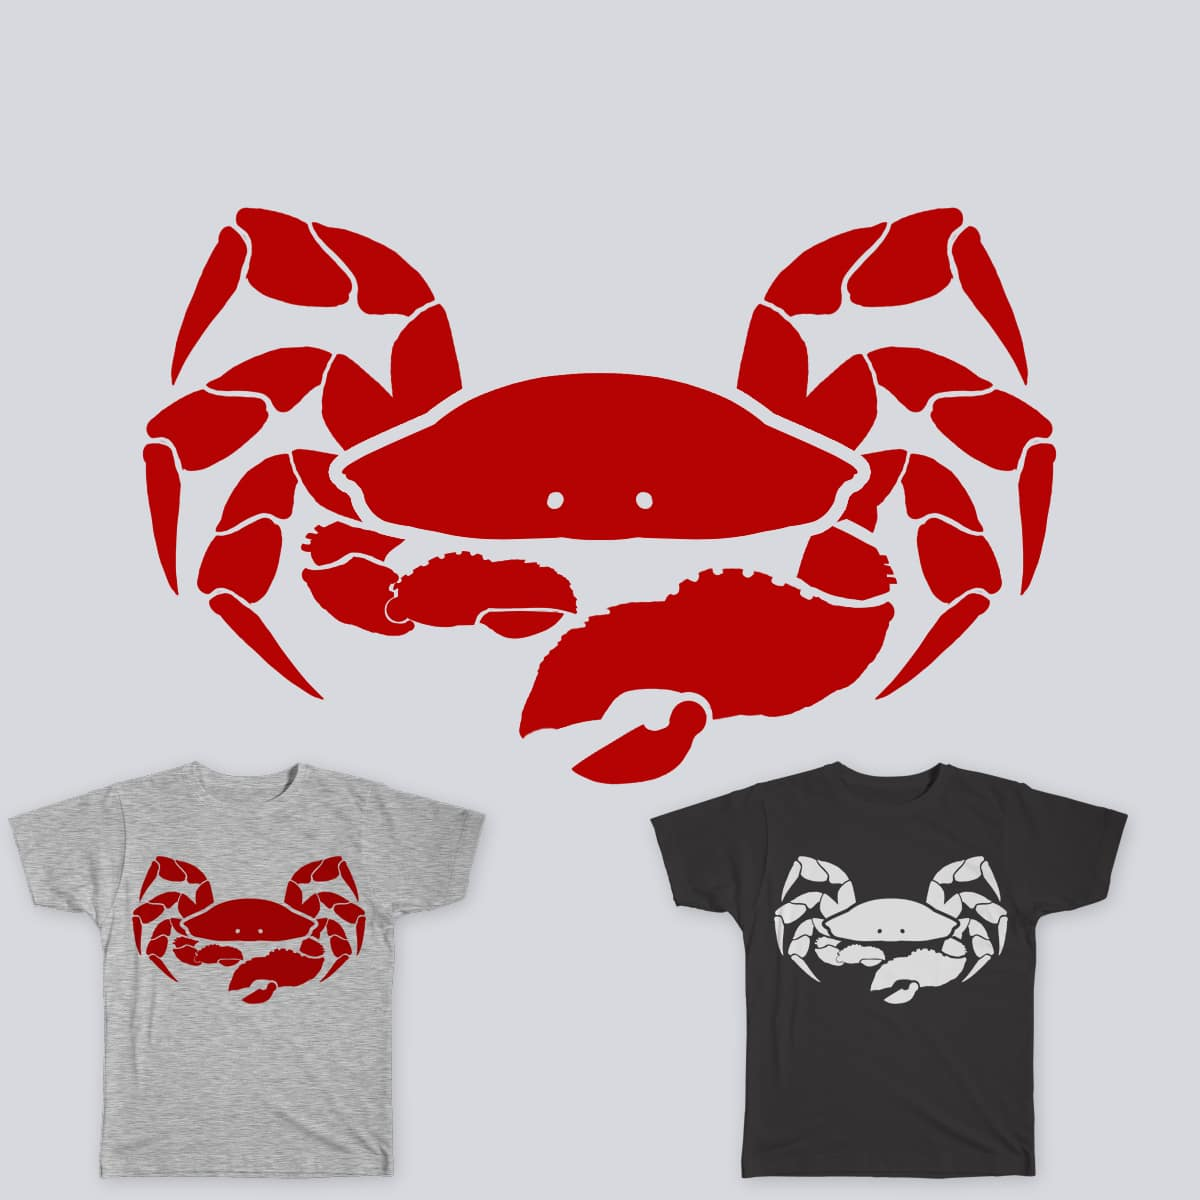 crab by Canuto_Aguilar on Threadless